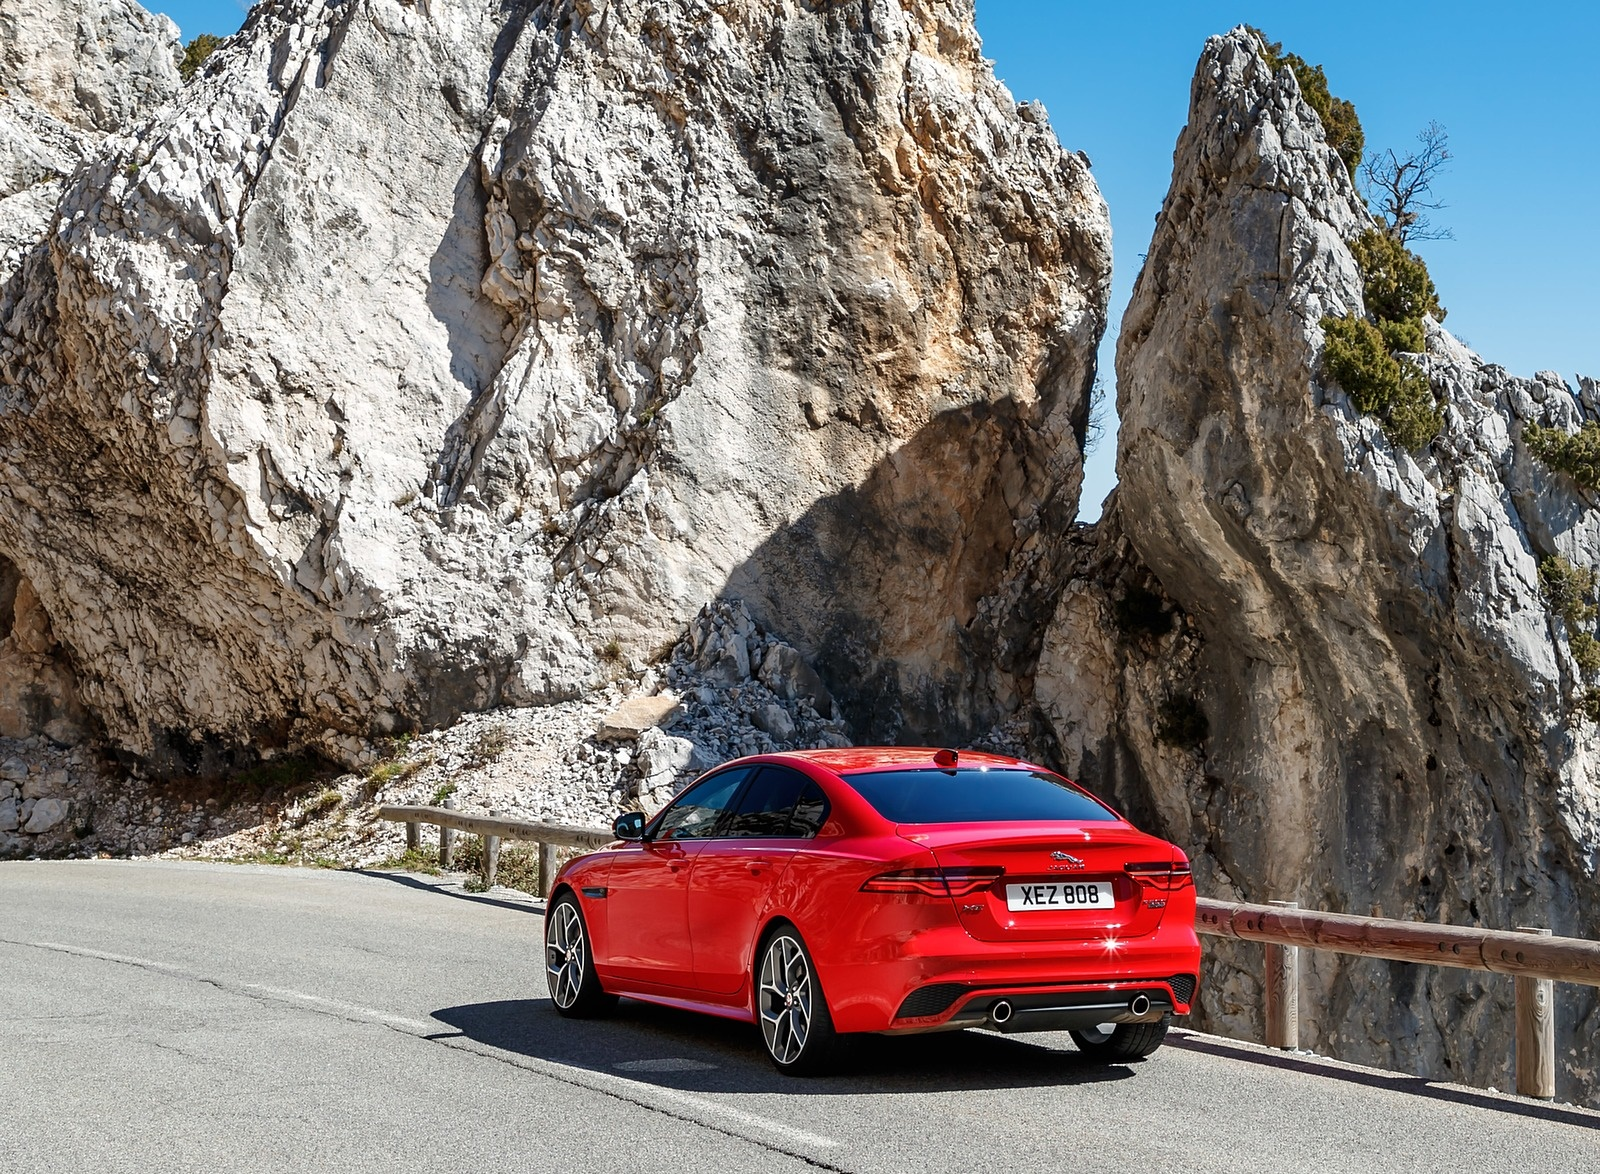 2020 Jaguar XE S R-Dynamic P300 (Color: Caldera Red) Rear Three-Quarter Wallpapers (15)